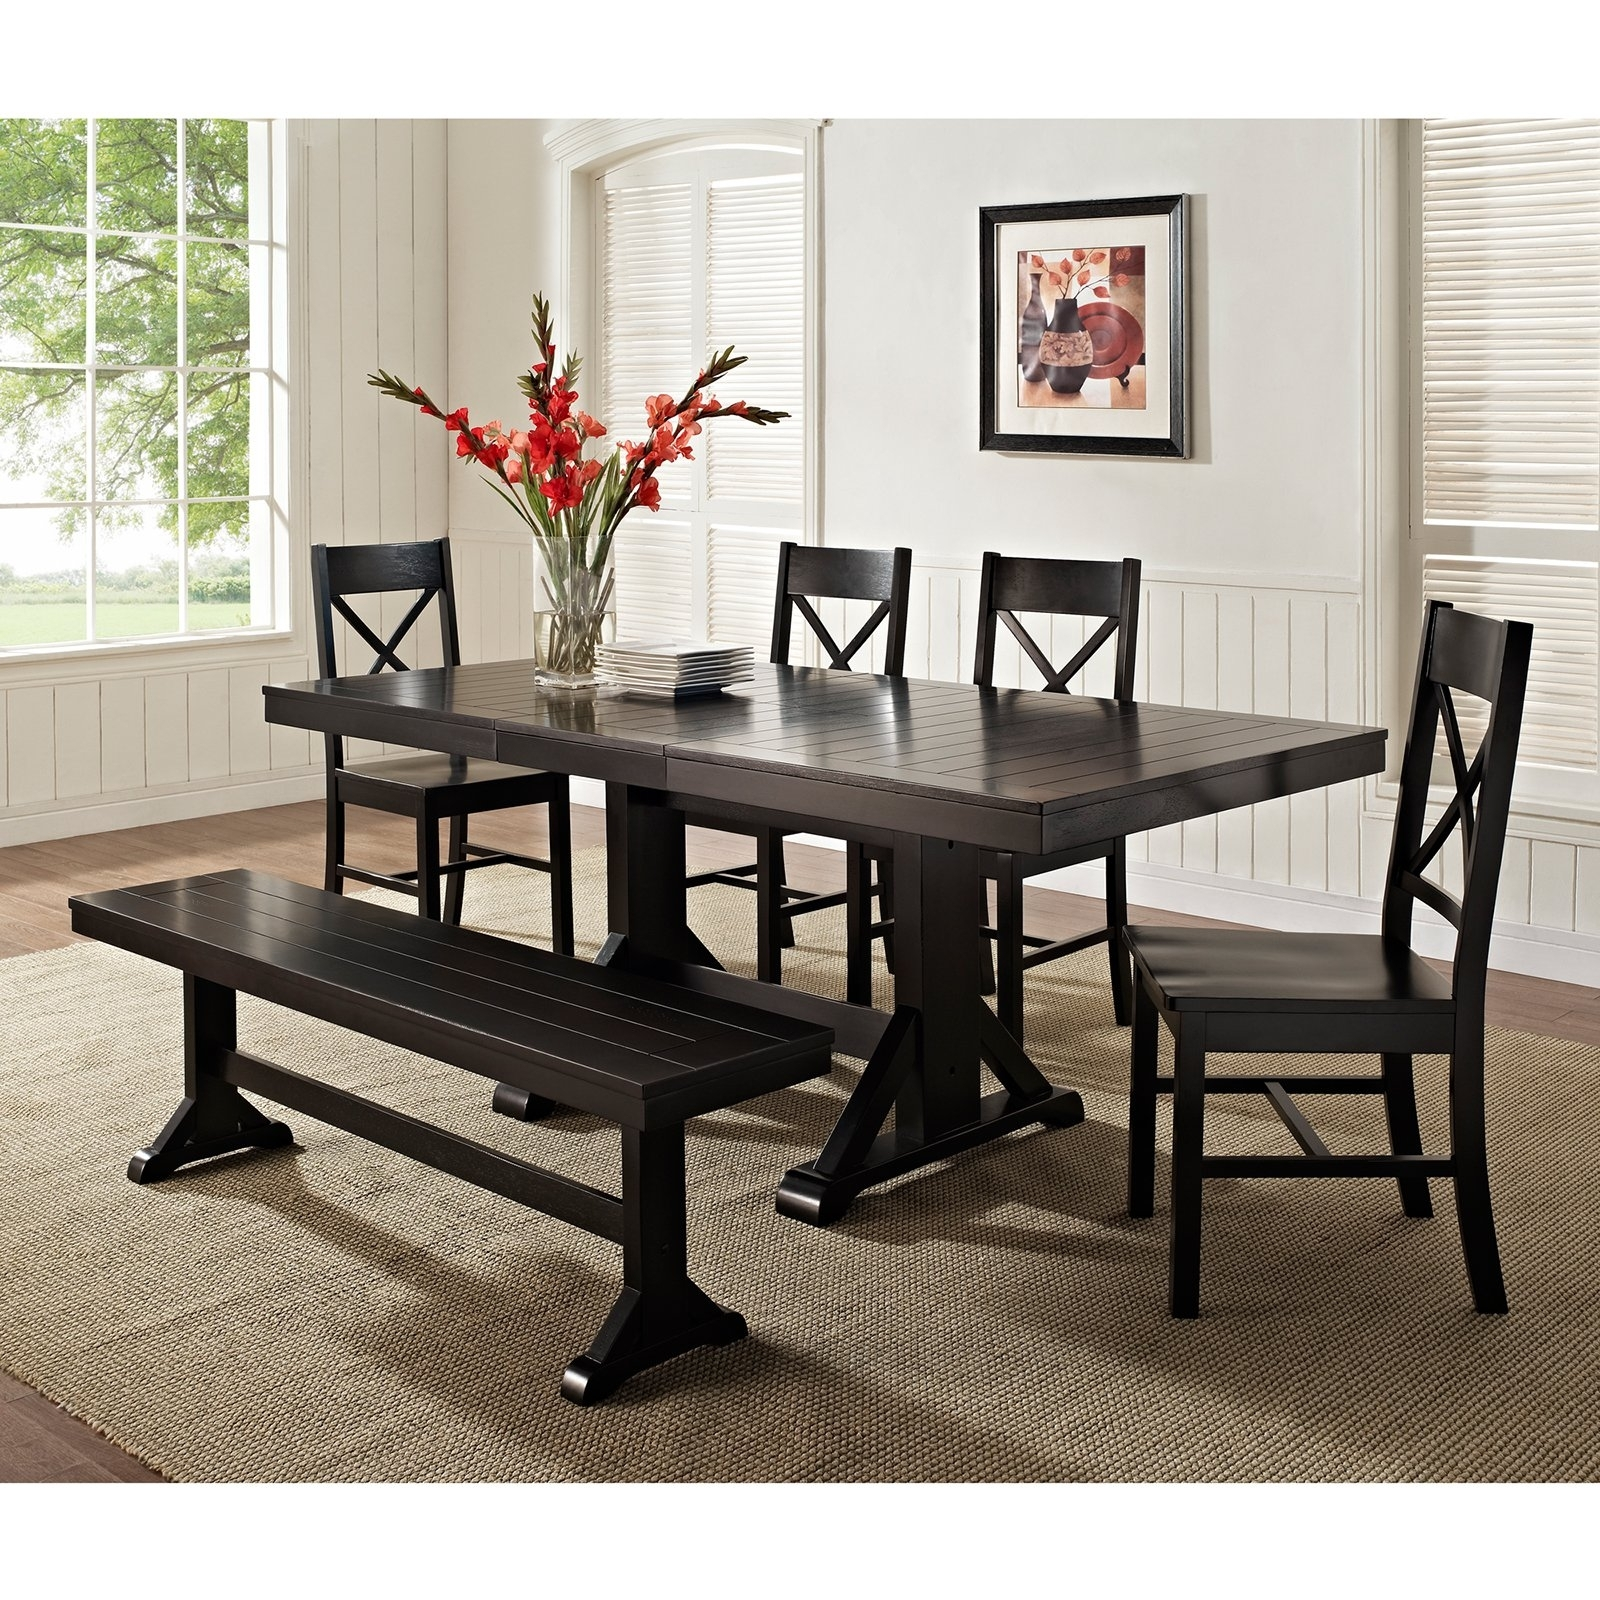 Walker Edison Black 6 Piece Solid Wood Dining Set With Bench Regarding Newest Roma Dining Tables And Chairs Sets (View 23 of 25)